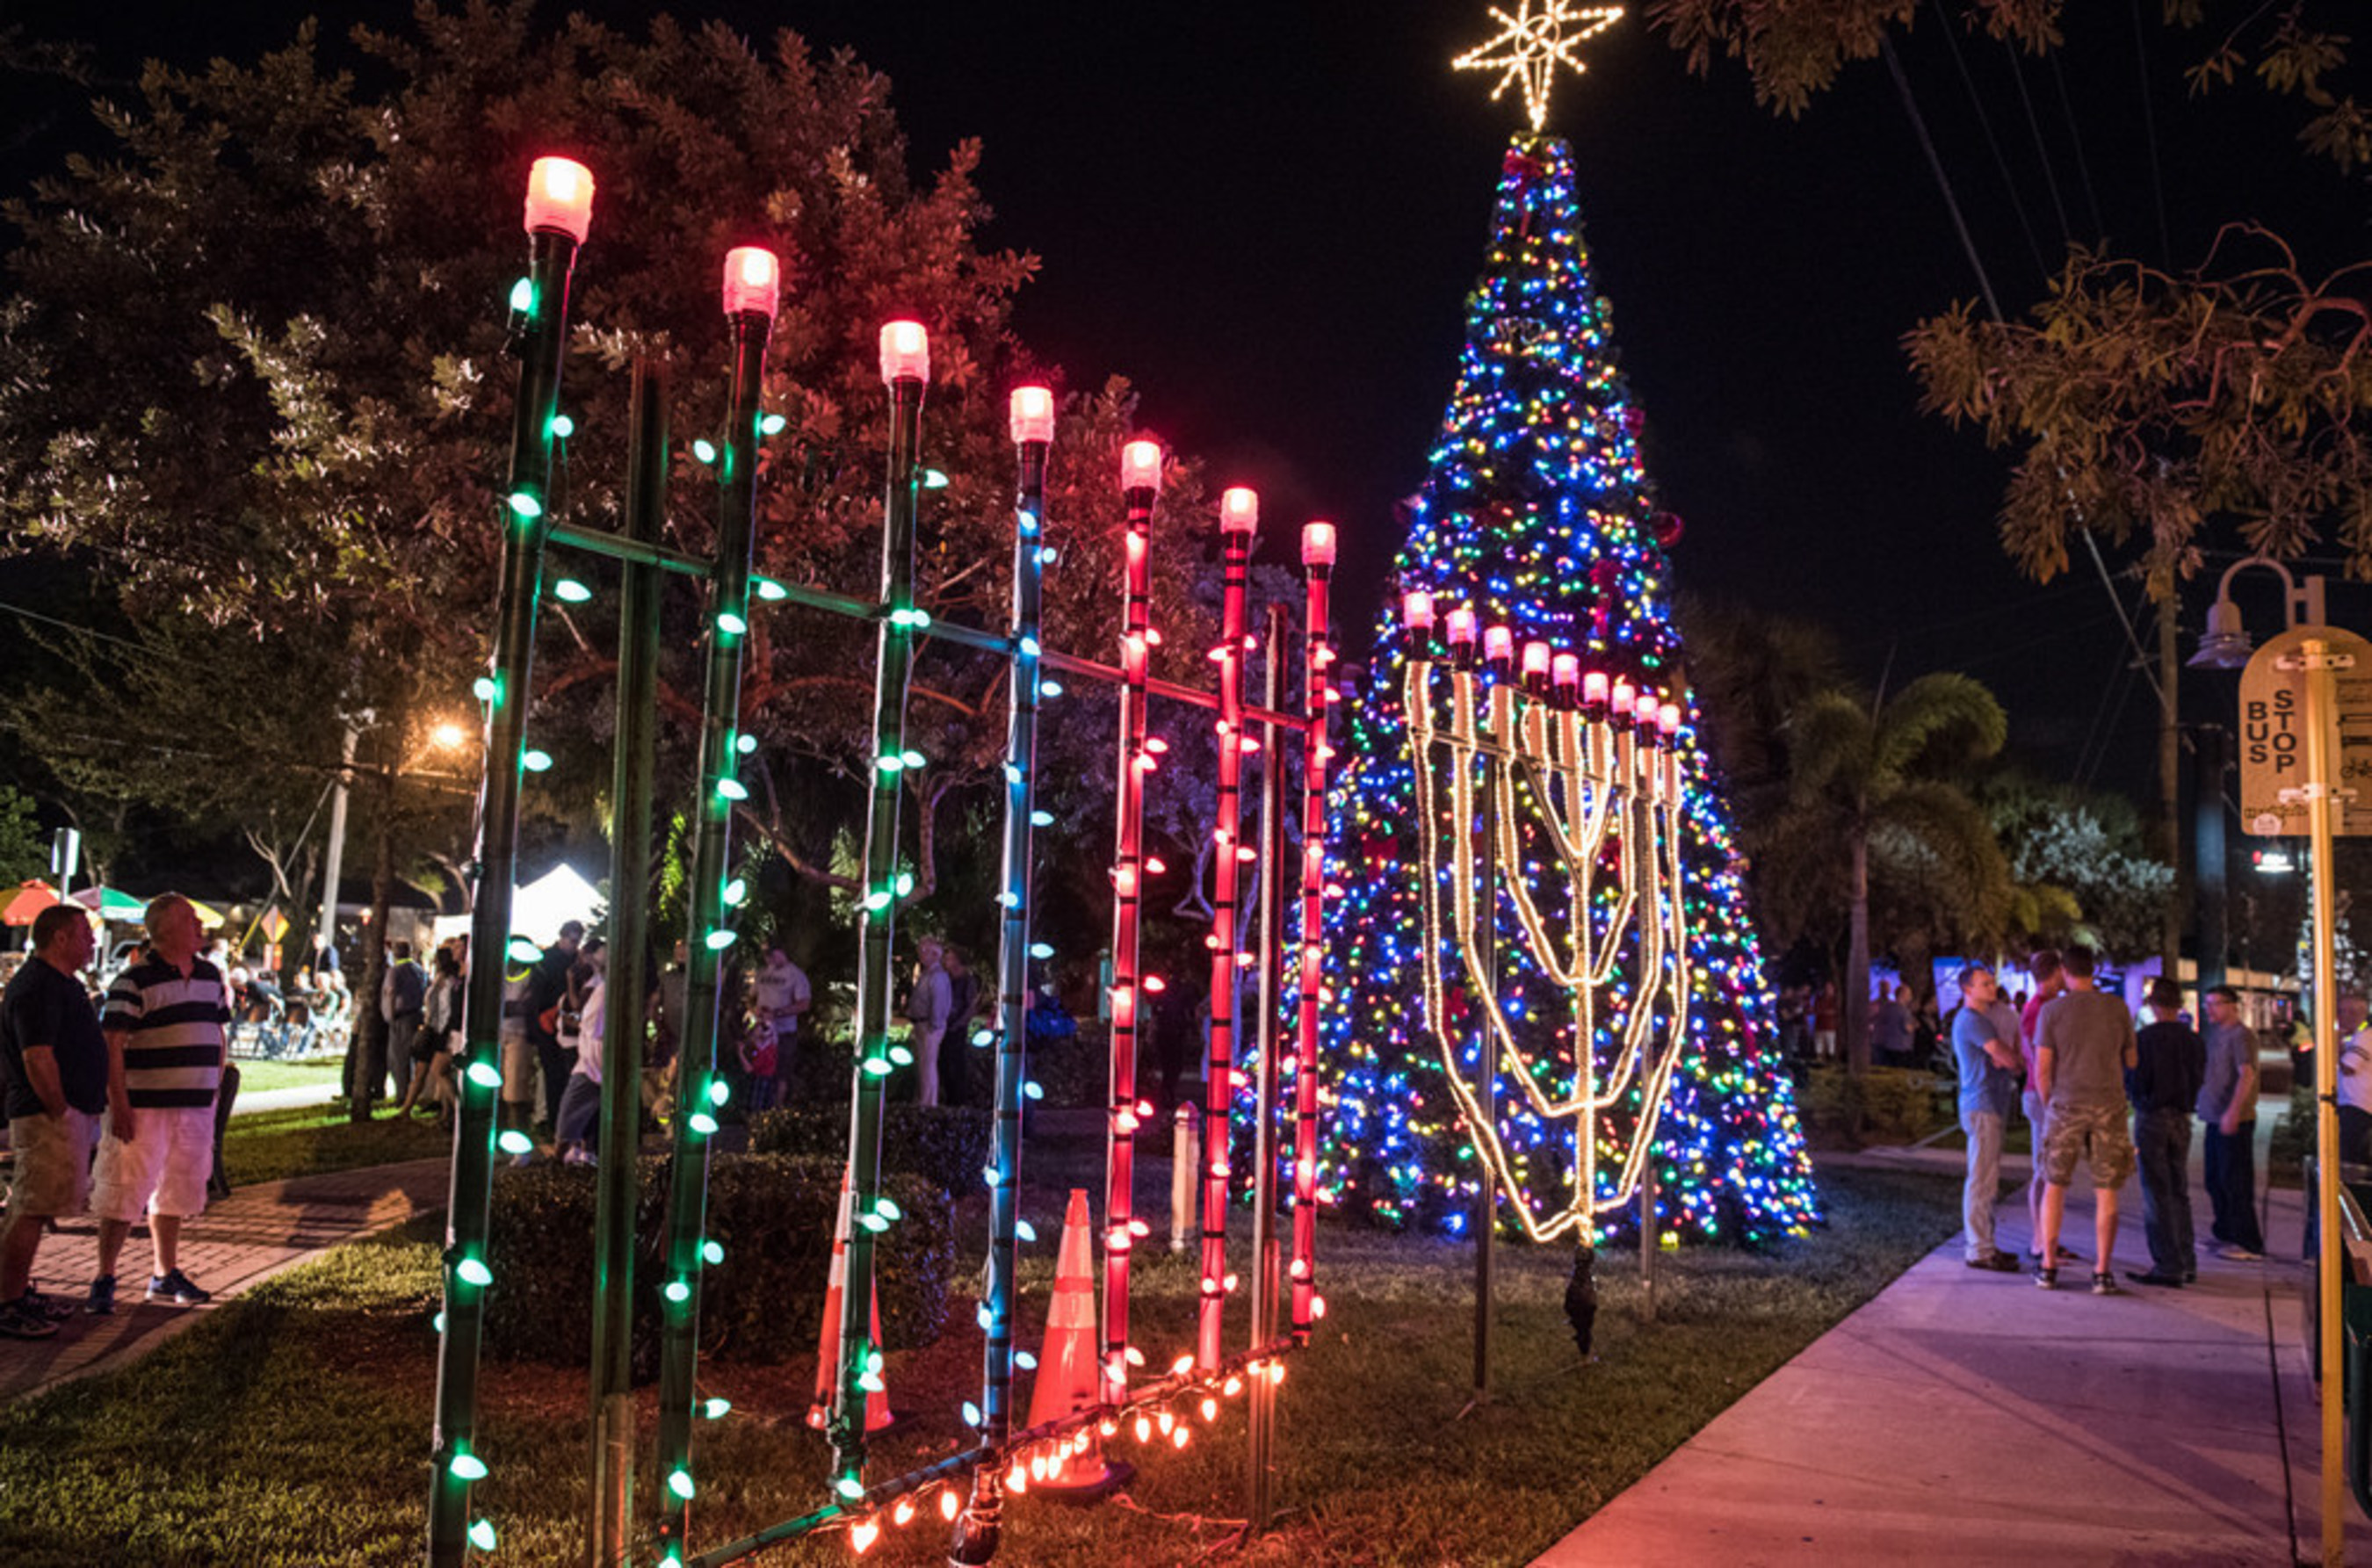 Celebrate the Holiday Season in the City of Wilton Manors